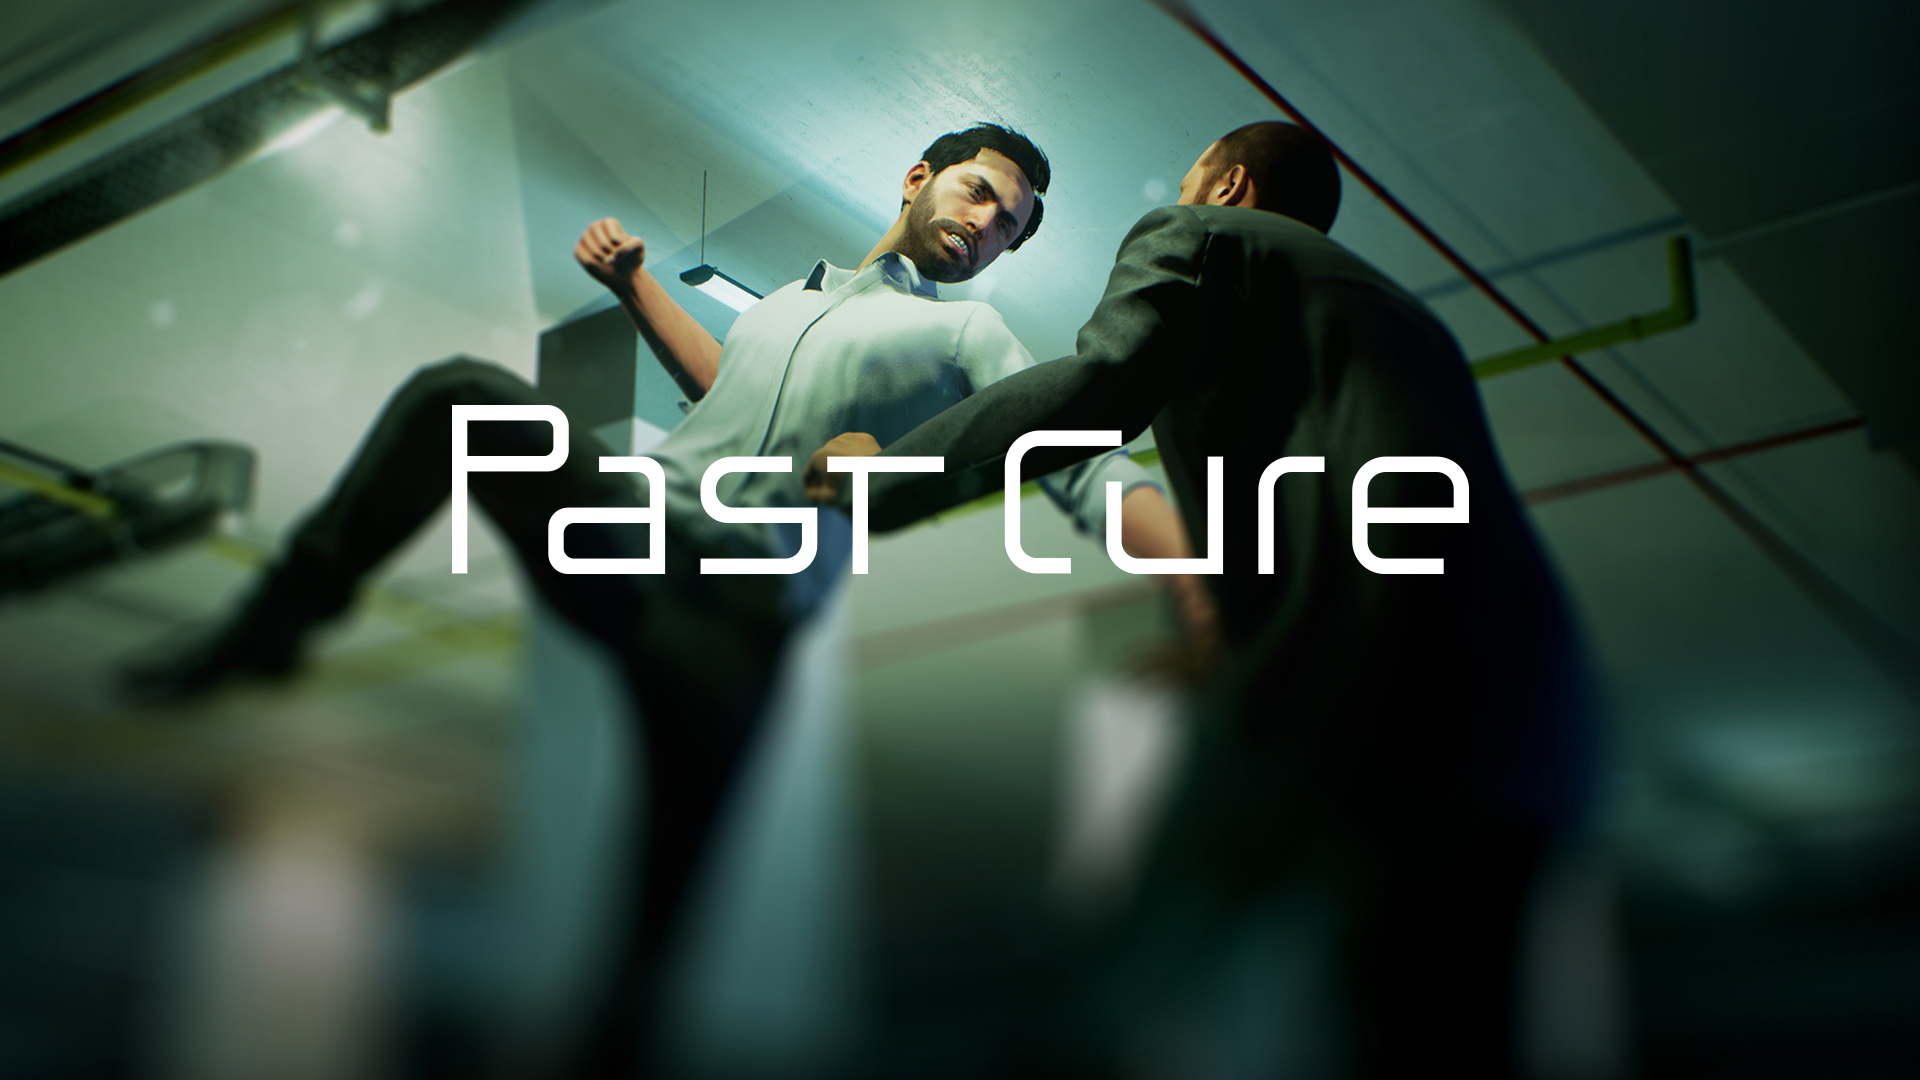 PAST CURE by independent studio Phantom 8 comes to PS4 and PC